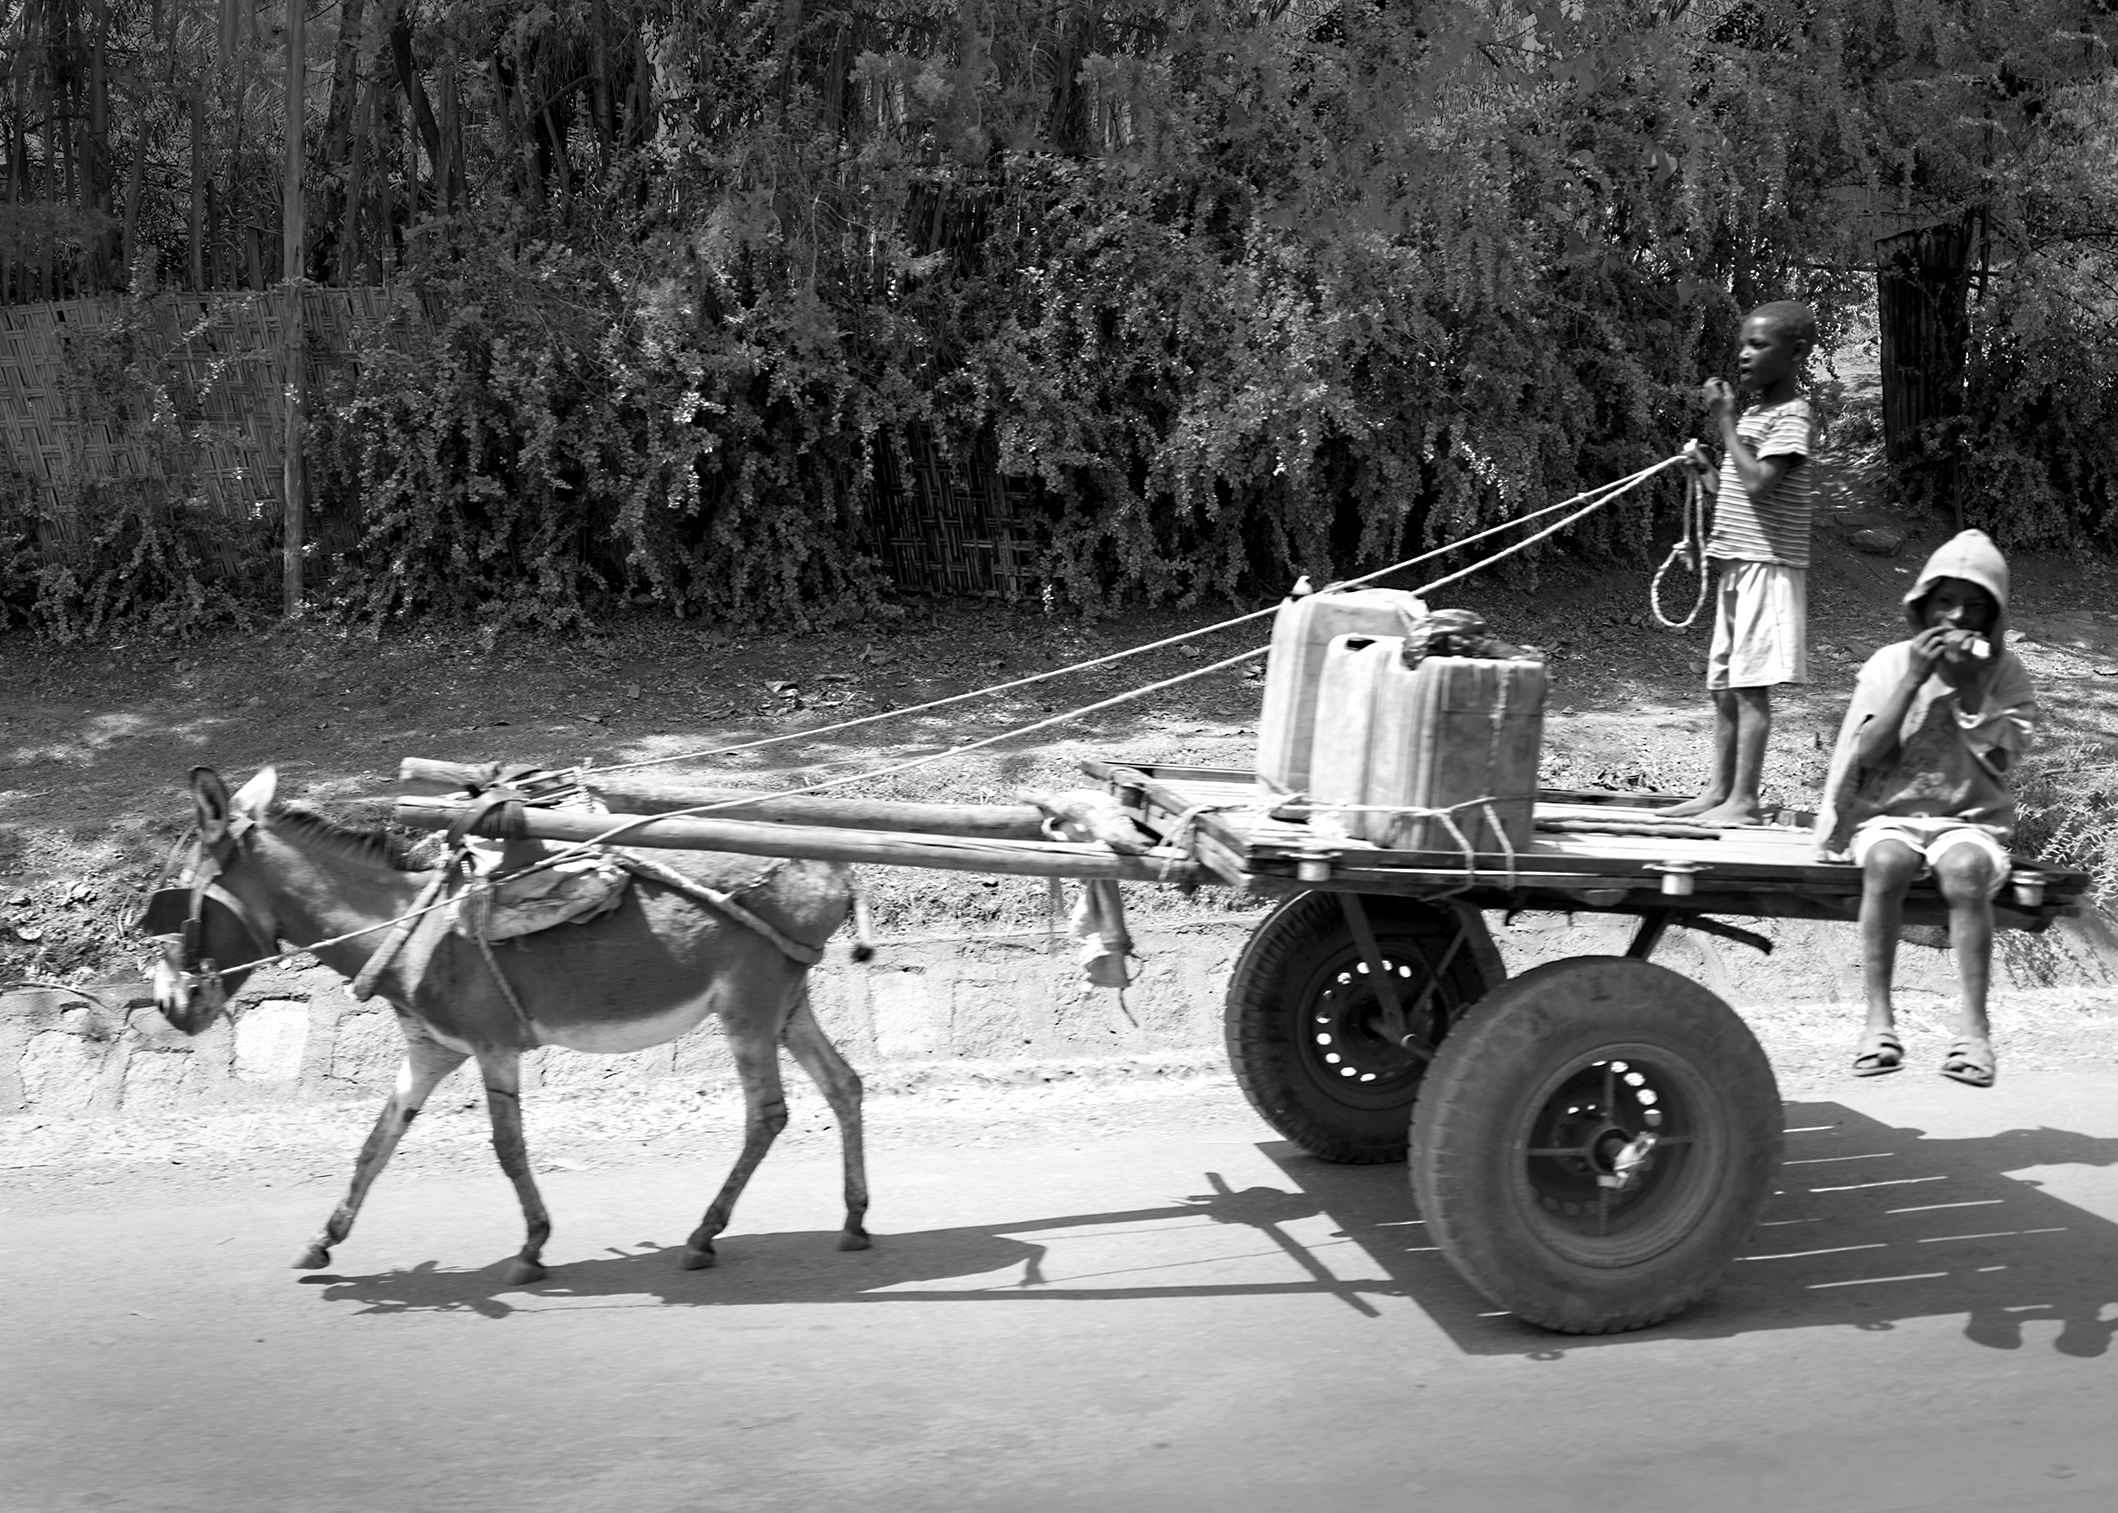 Passing through a village on the road from Addis to Awassa, boys driving a donkey-led cart,loaded with water containers.